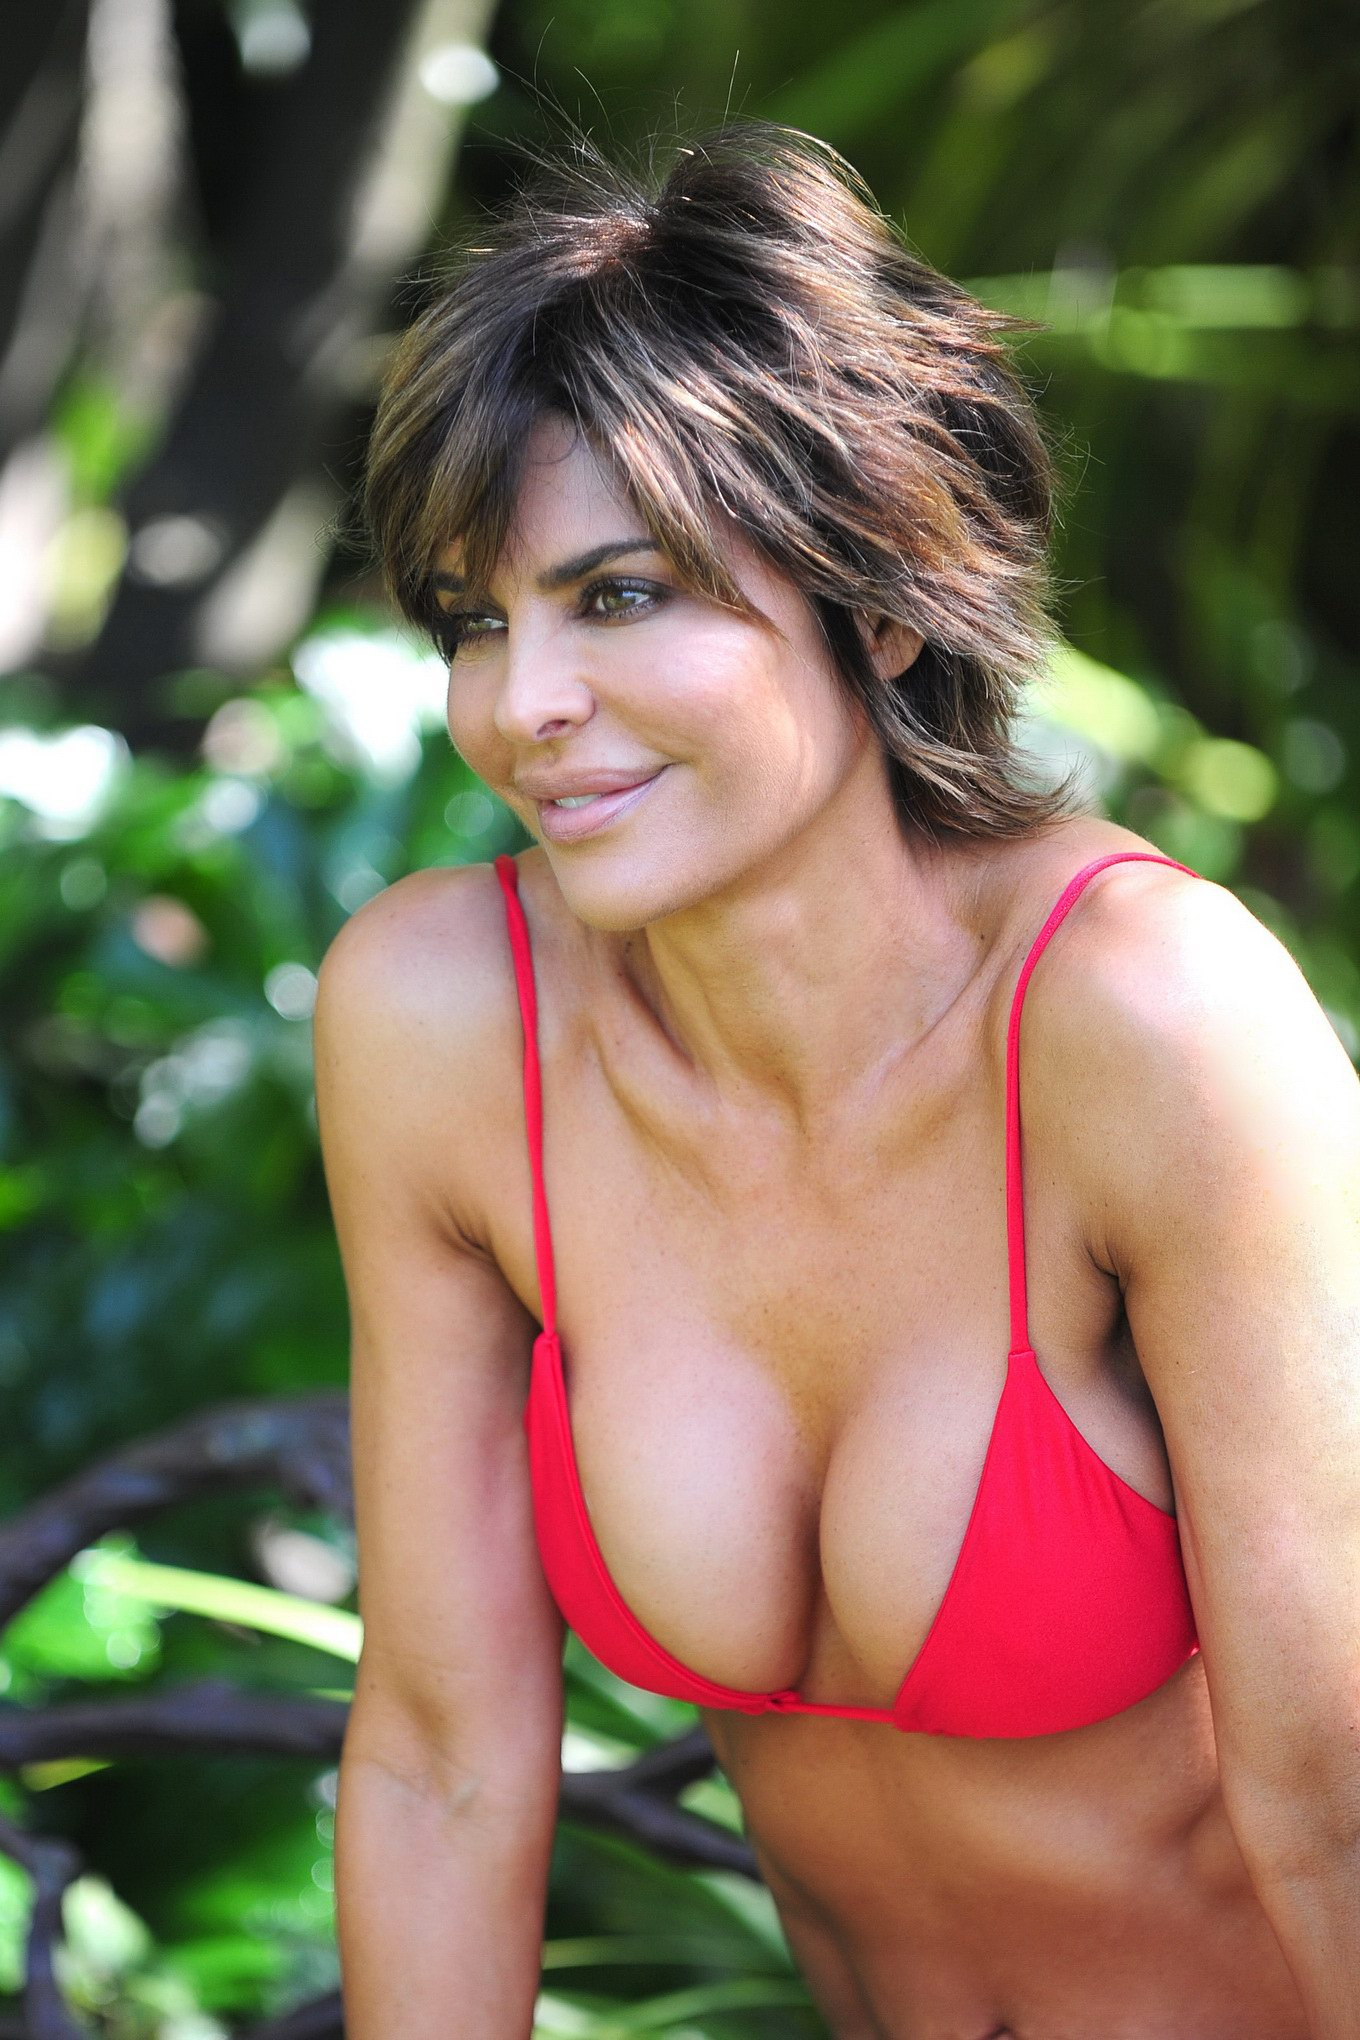 Very horny lisa rinna bikini guy would